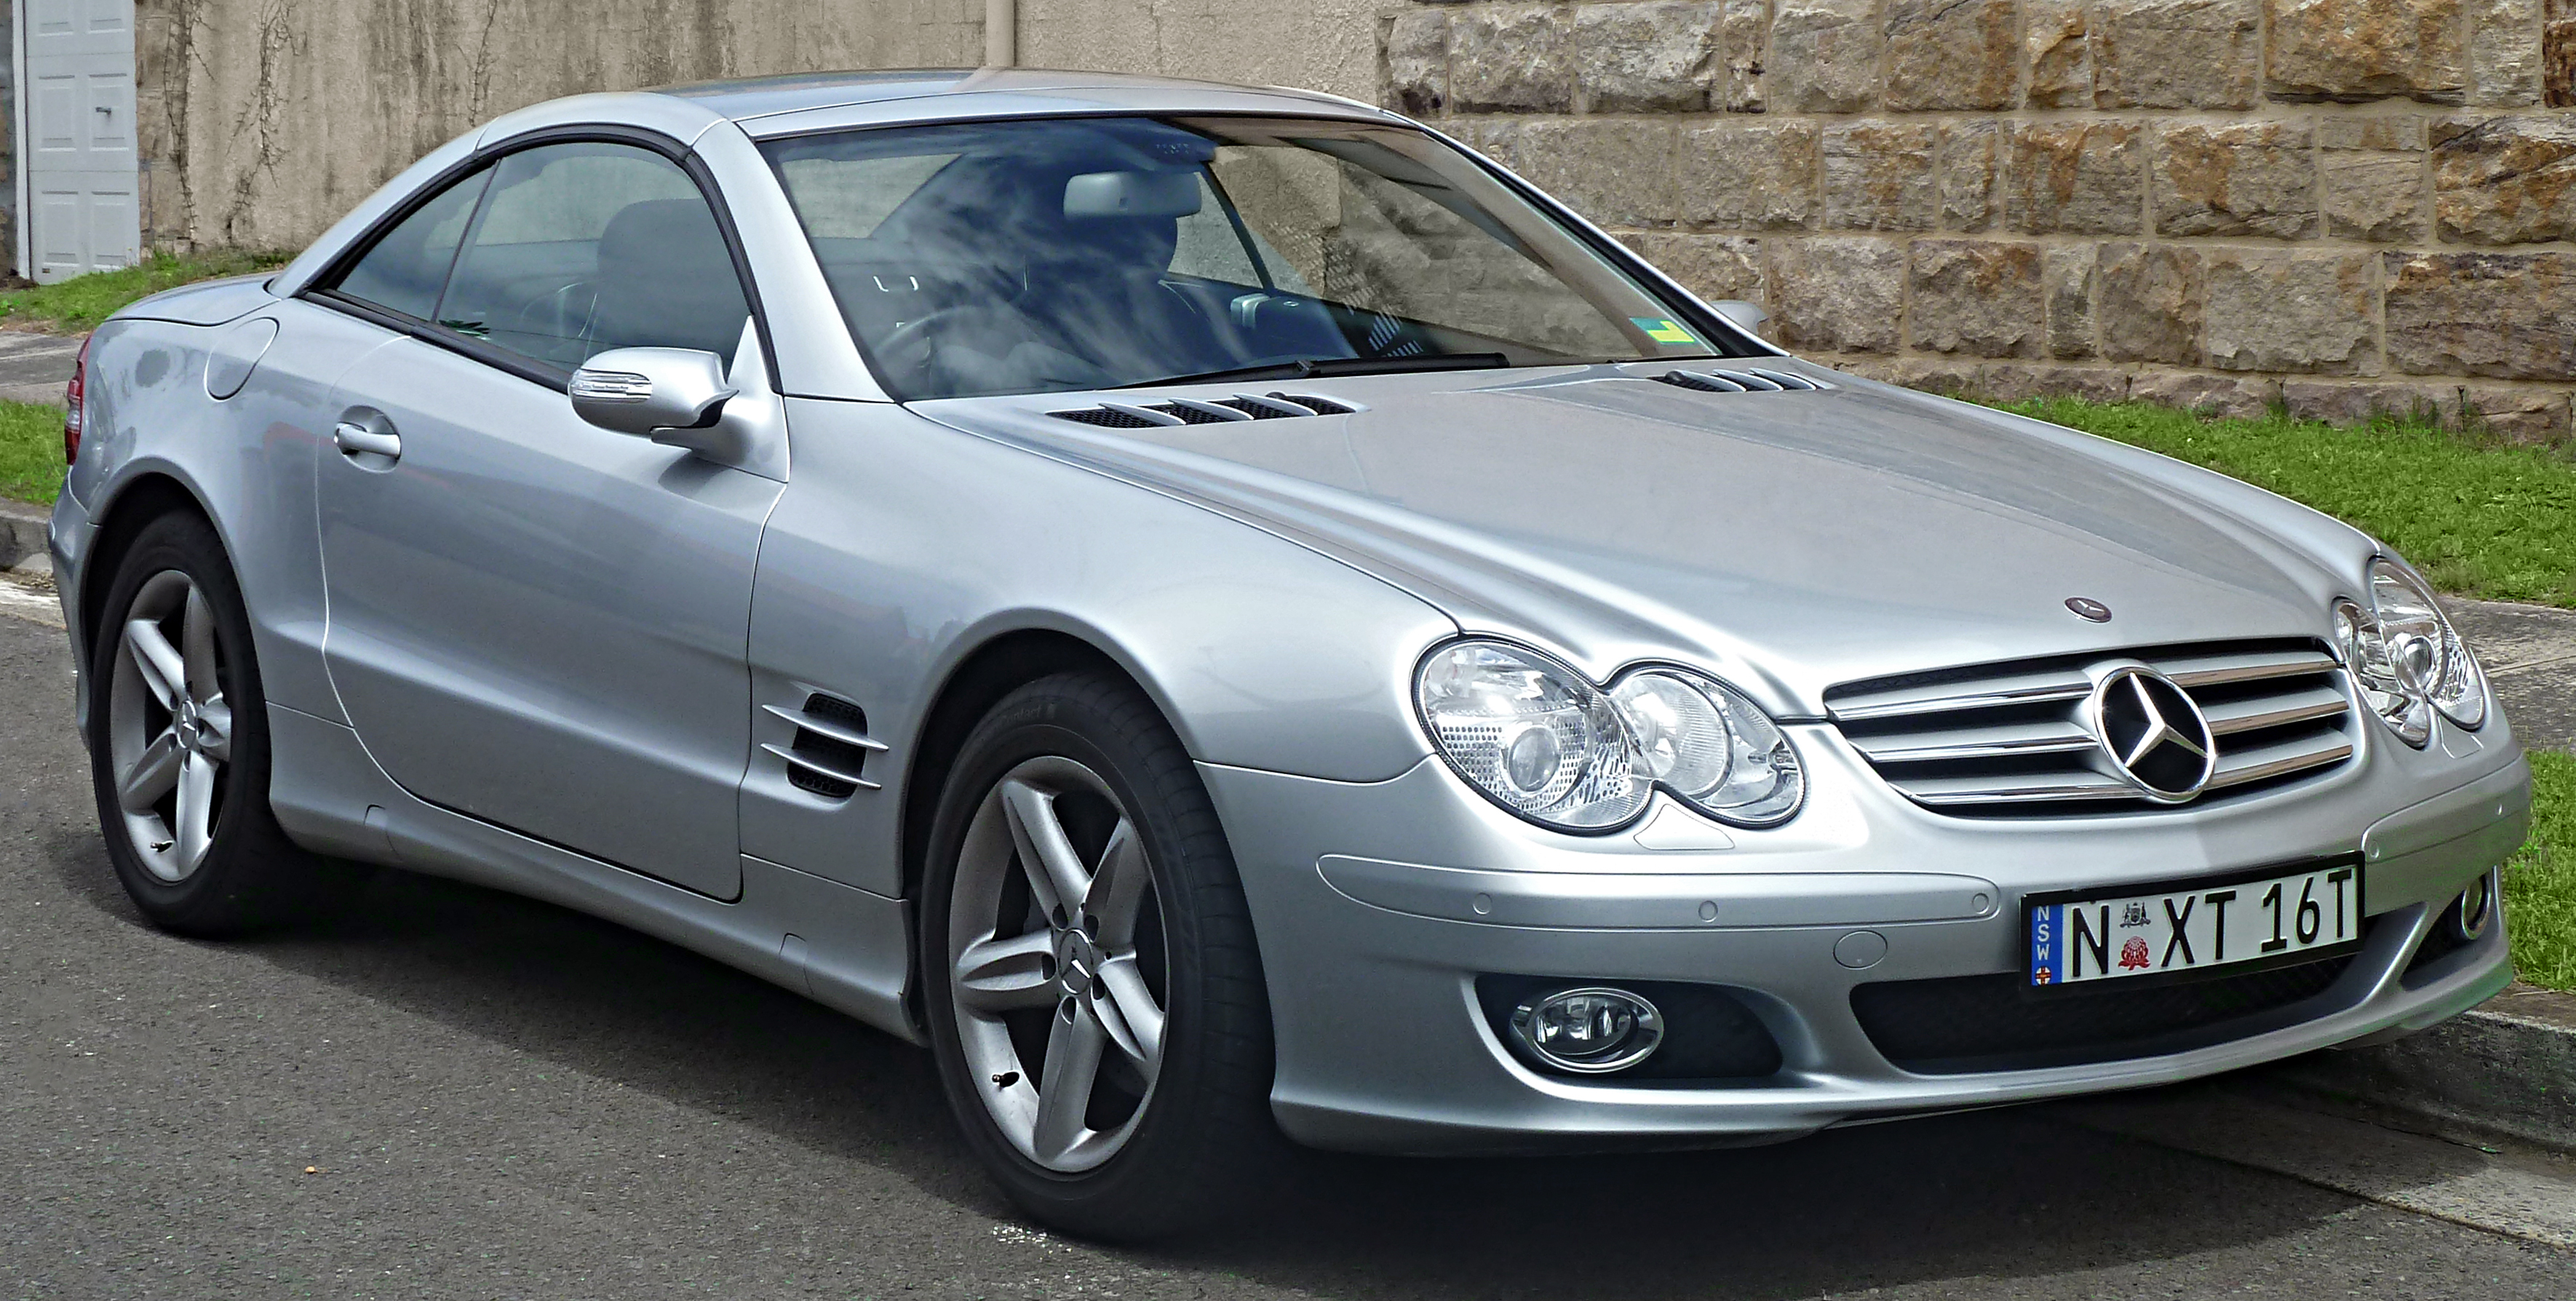 Automotive area 2011 mercedes benz sl r230 - Automotive Area 2011 Mercedes Benz Sl R230 6